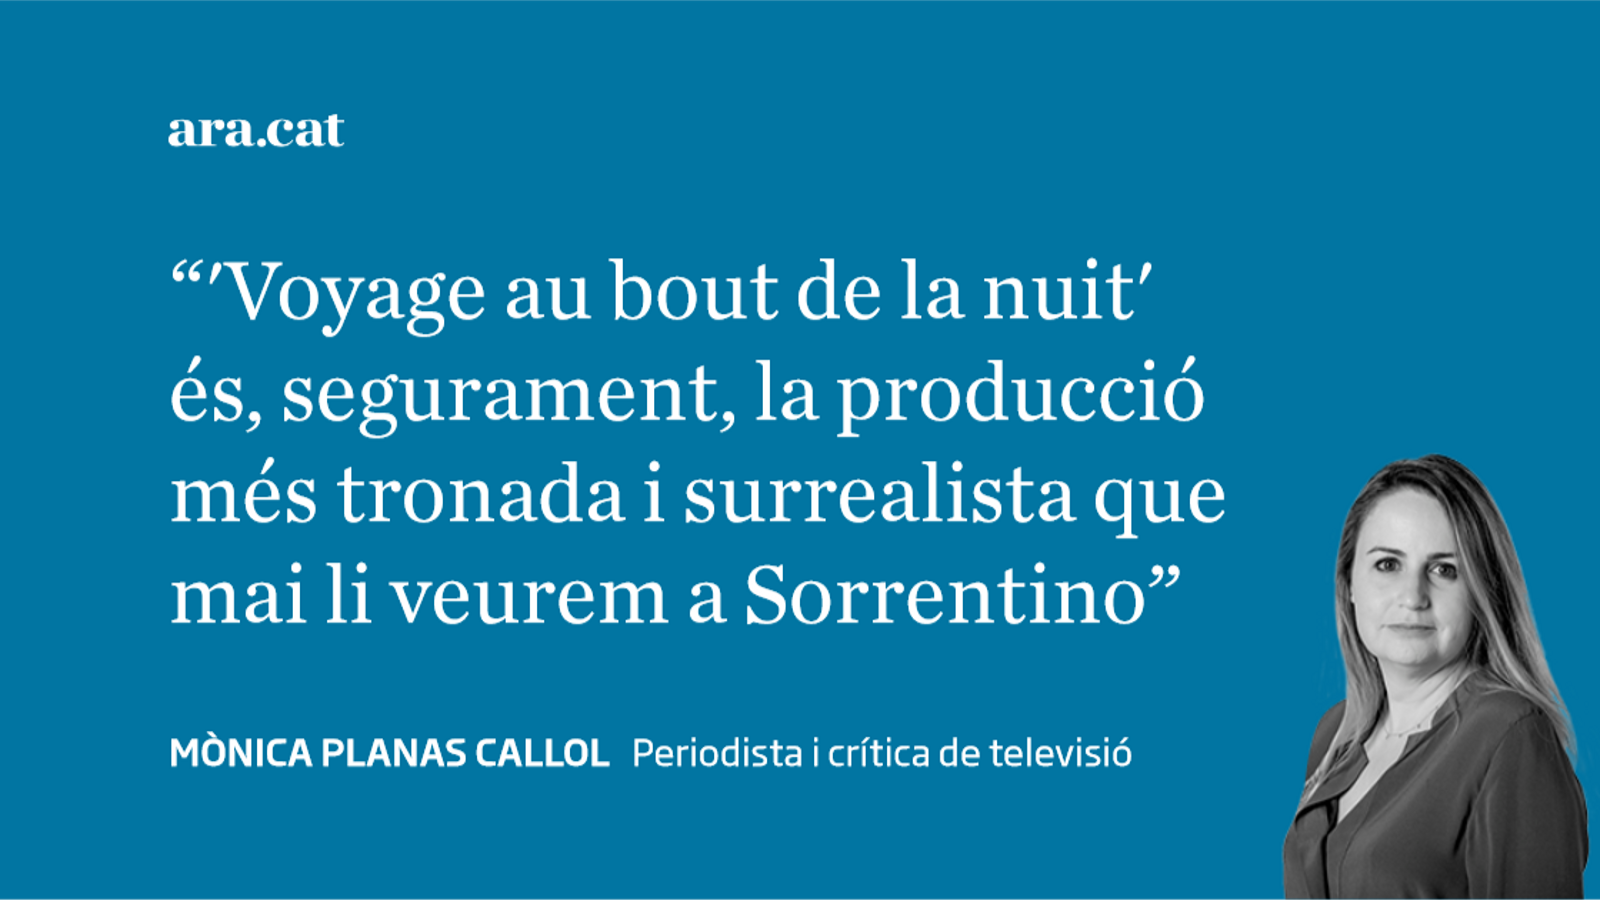 El confinament de Paolo Sorrentino